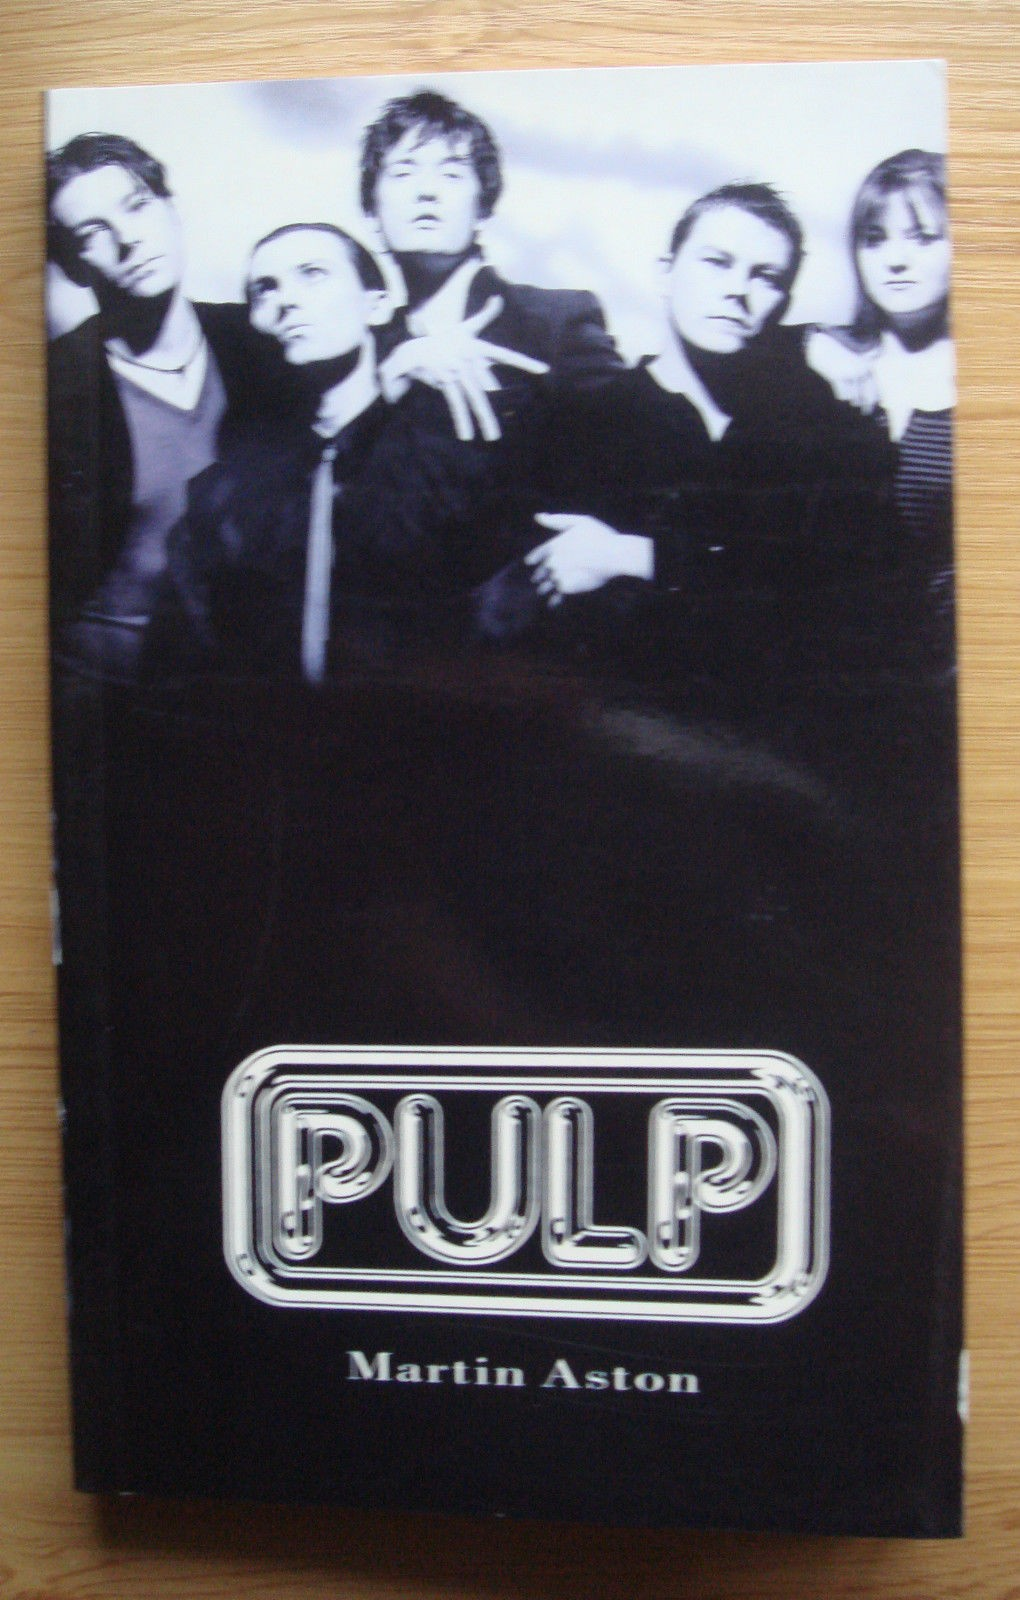 Pulp By Martin Aston Jarvis Cocker Biography History Book Pictures Britpop B23